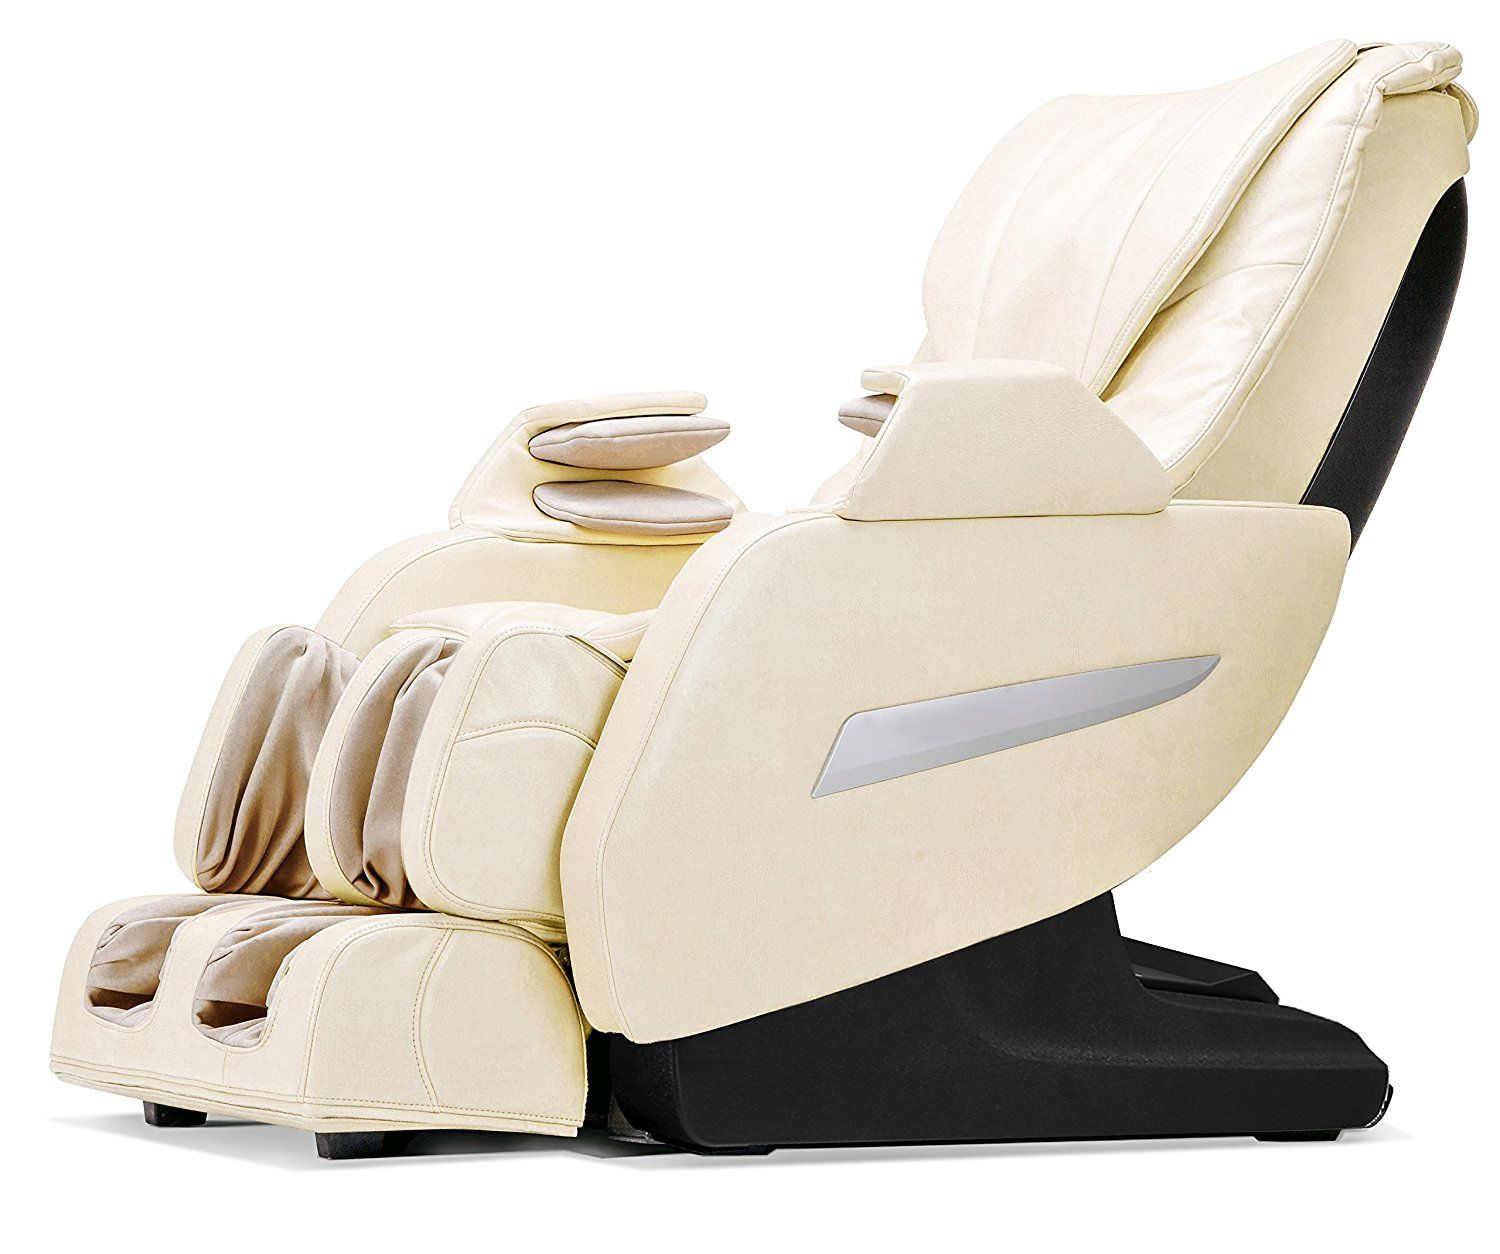 Full Body Zero Gravity Shiatsu Massage Chair Recliner w